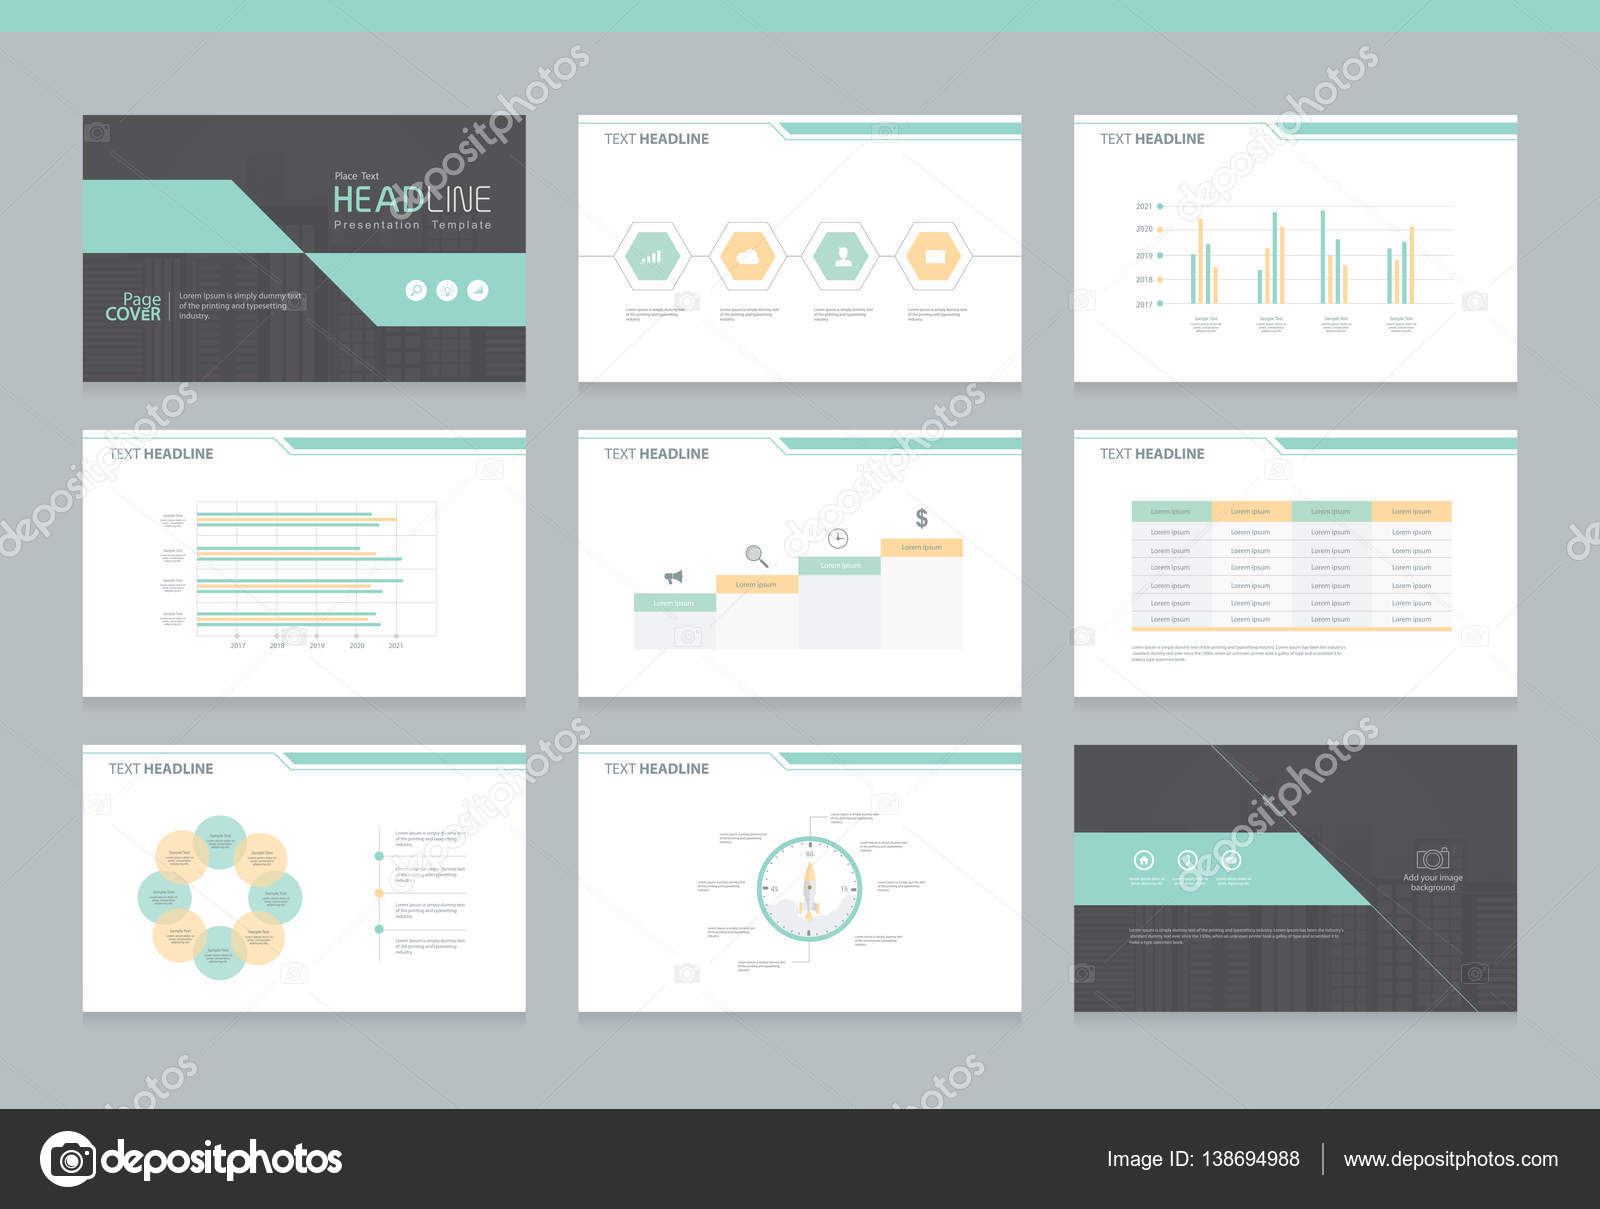 Business Powerpoint Presentation Background Design Template